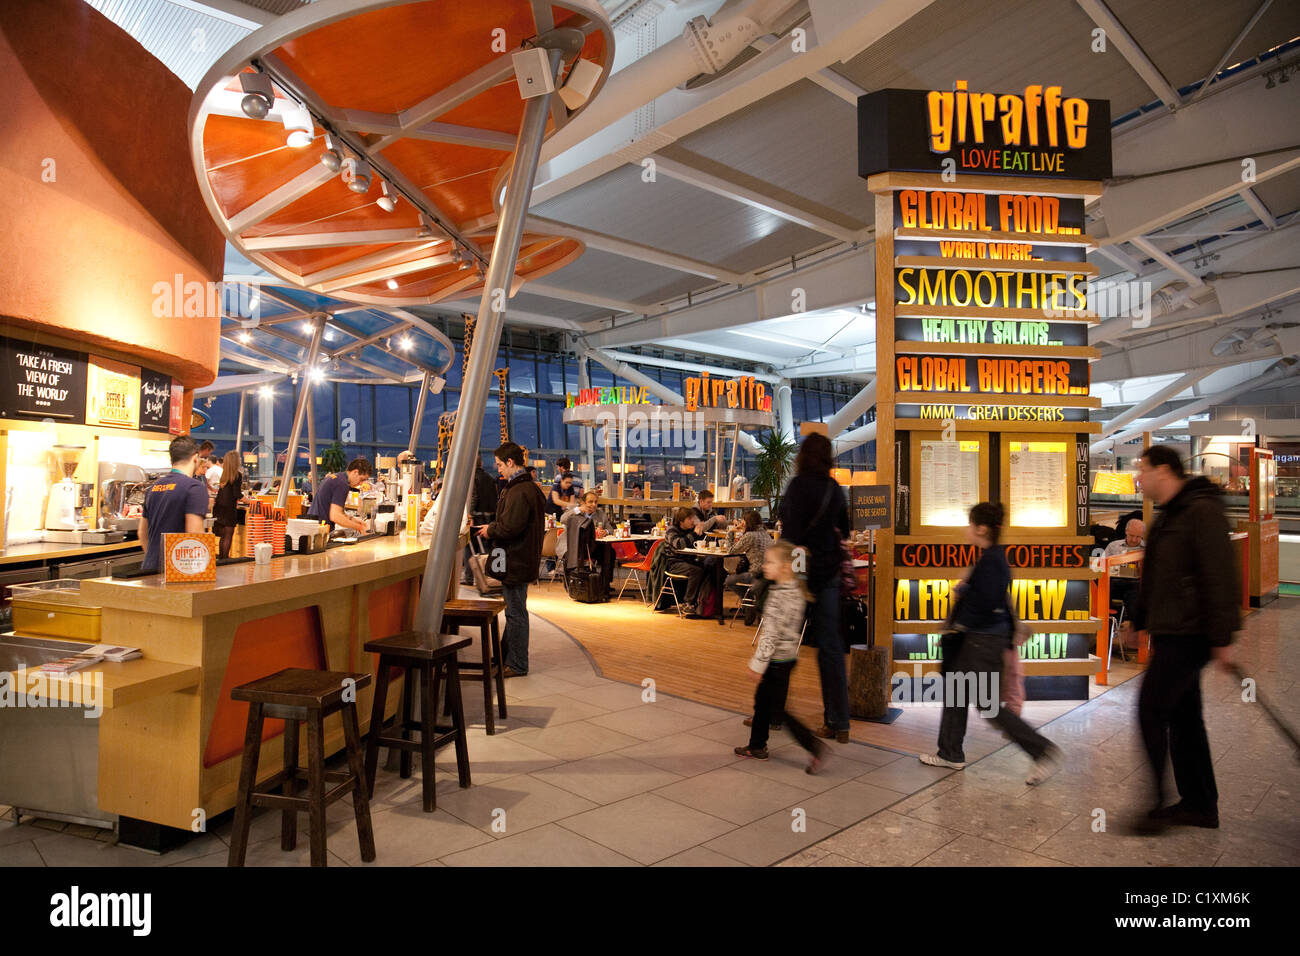 The giraffe restaurant cafe in terminal heathrow